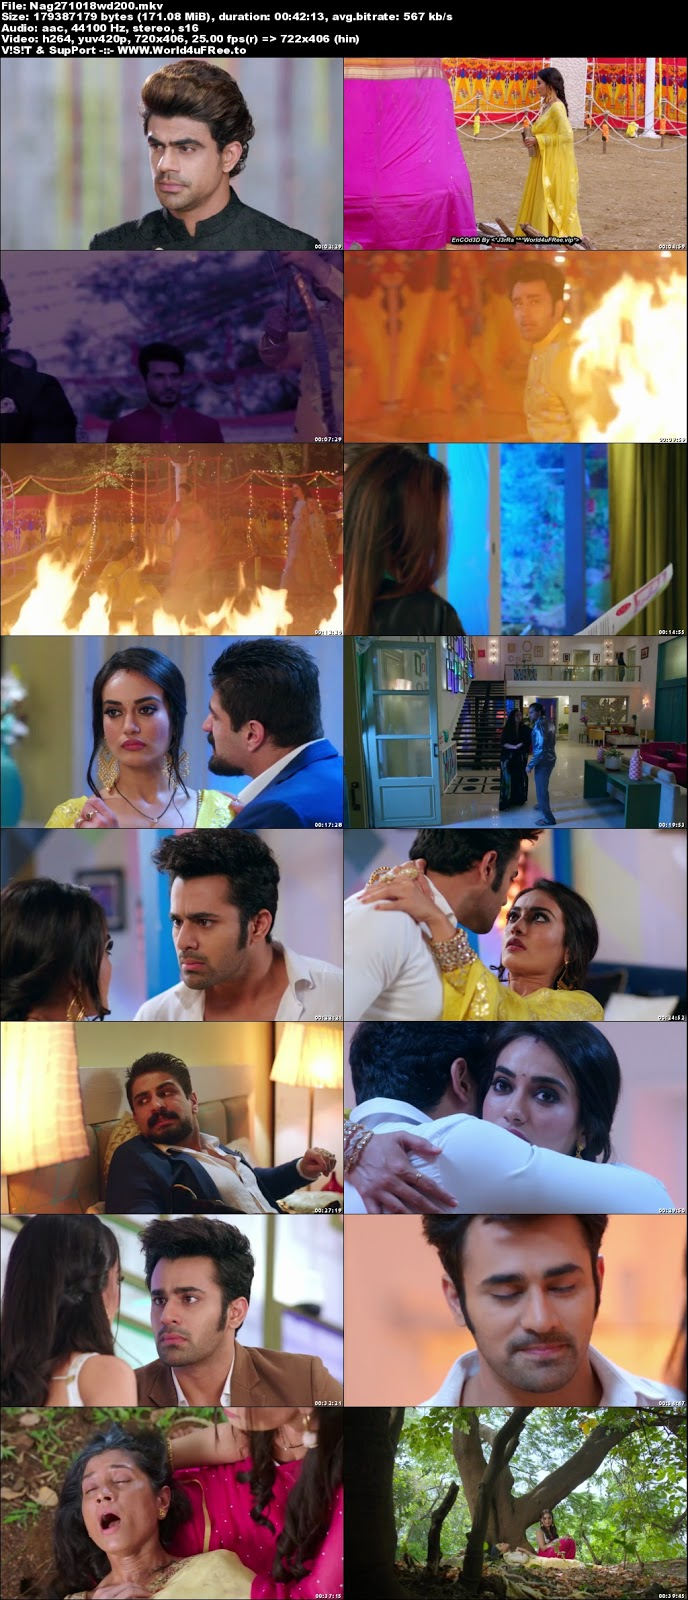 Naagin Season 3  2018 Episode 43 HDTV 480p 200mb world4ufree.vip tv show Naagin Season 3 hindi tv show Naagin Season 3  Colours  tv show compressed small size free download or watch online at world4ufree.vip